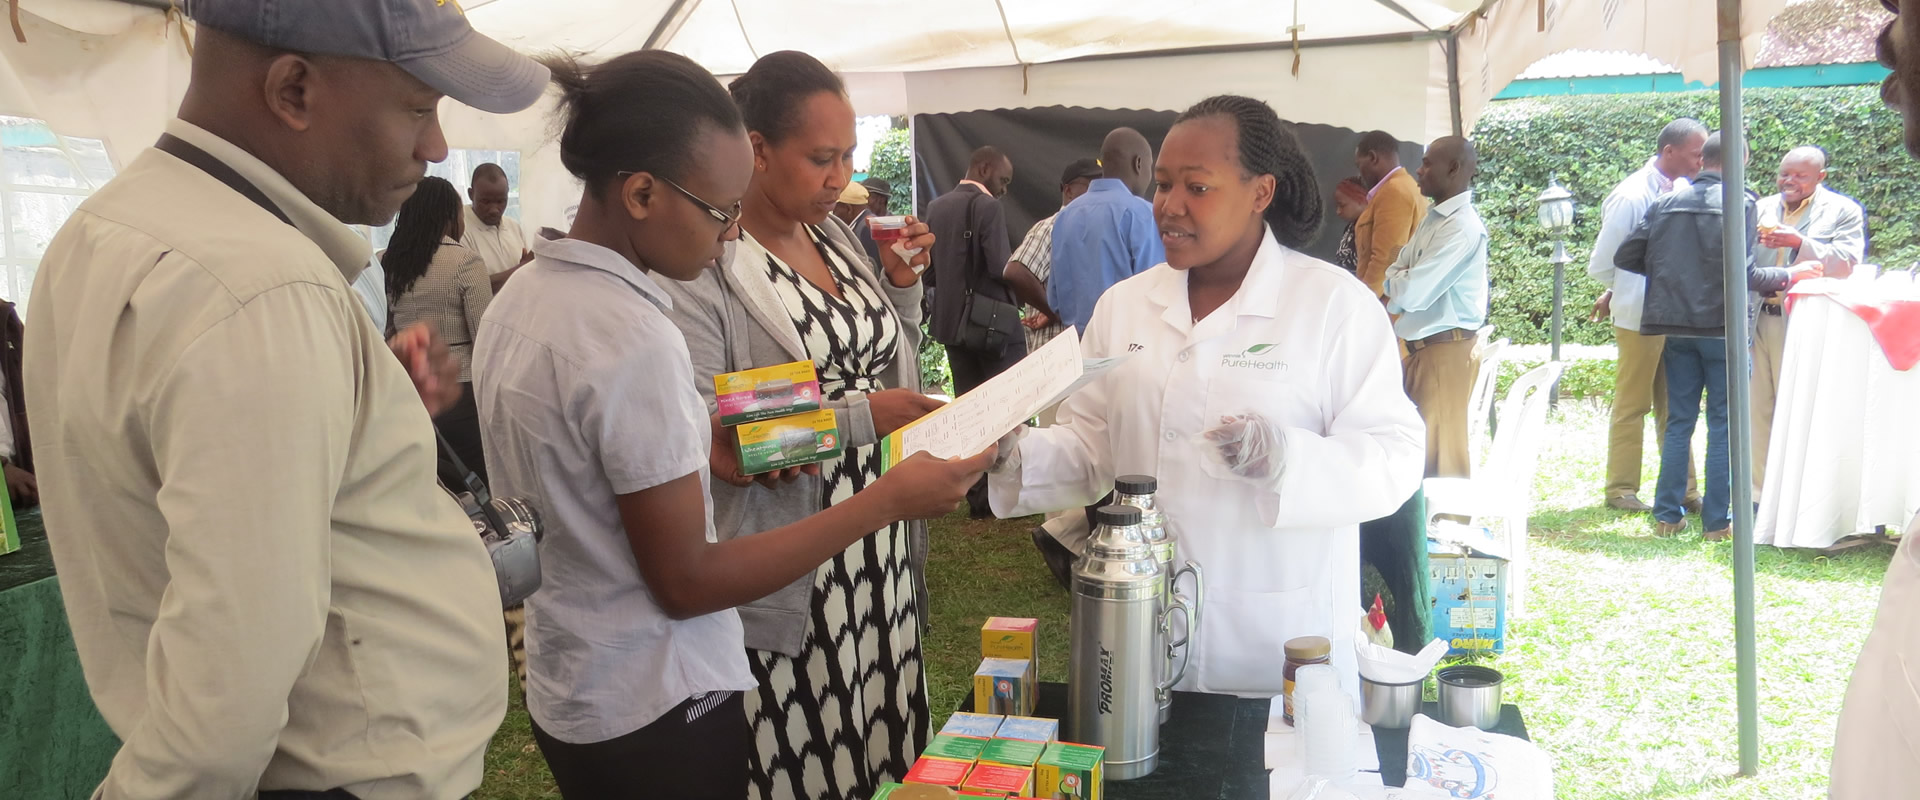 Participants engaging with Winnie's Pure Health exhibitors during organic market forum